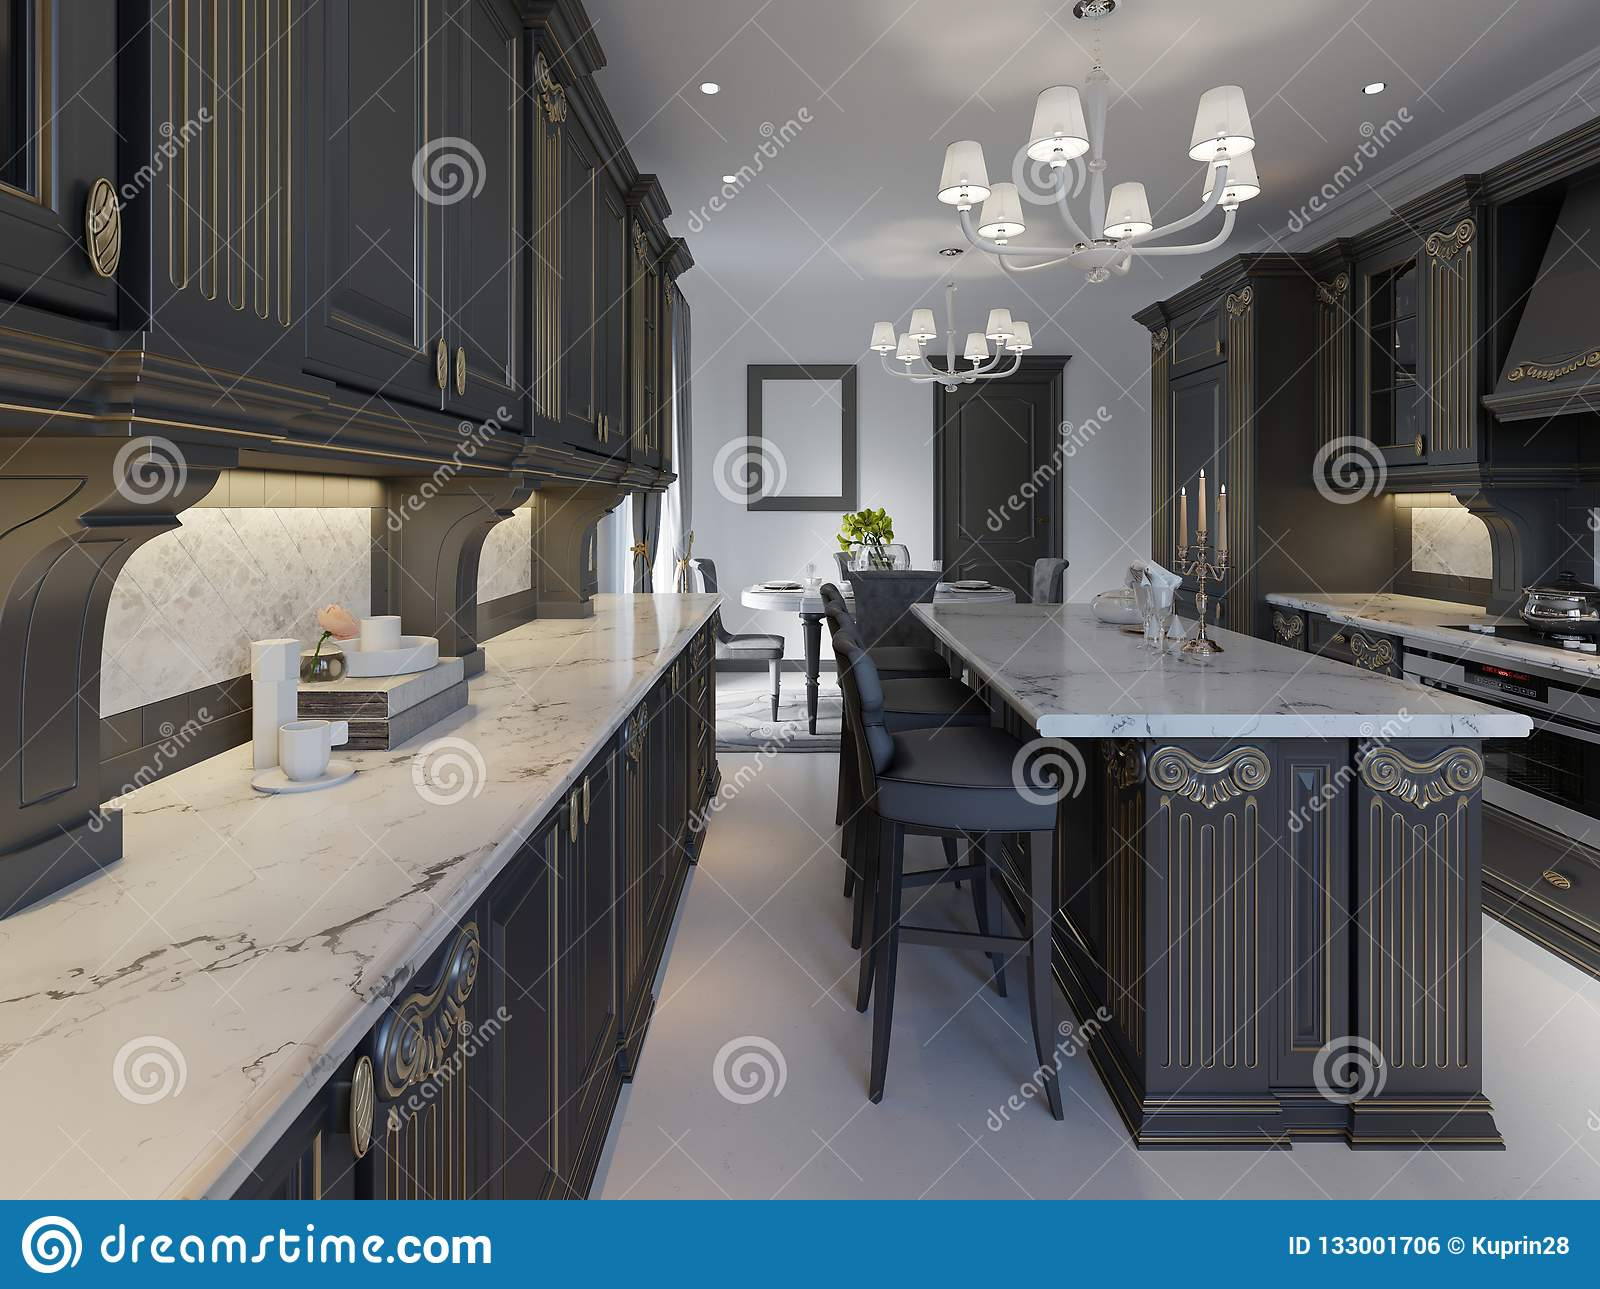 Modern Classic Kitchen Design With Black Cabinets And White Marble Worktop And Floor Stock Illustration Illustration Of Light Contemporary 133001706